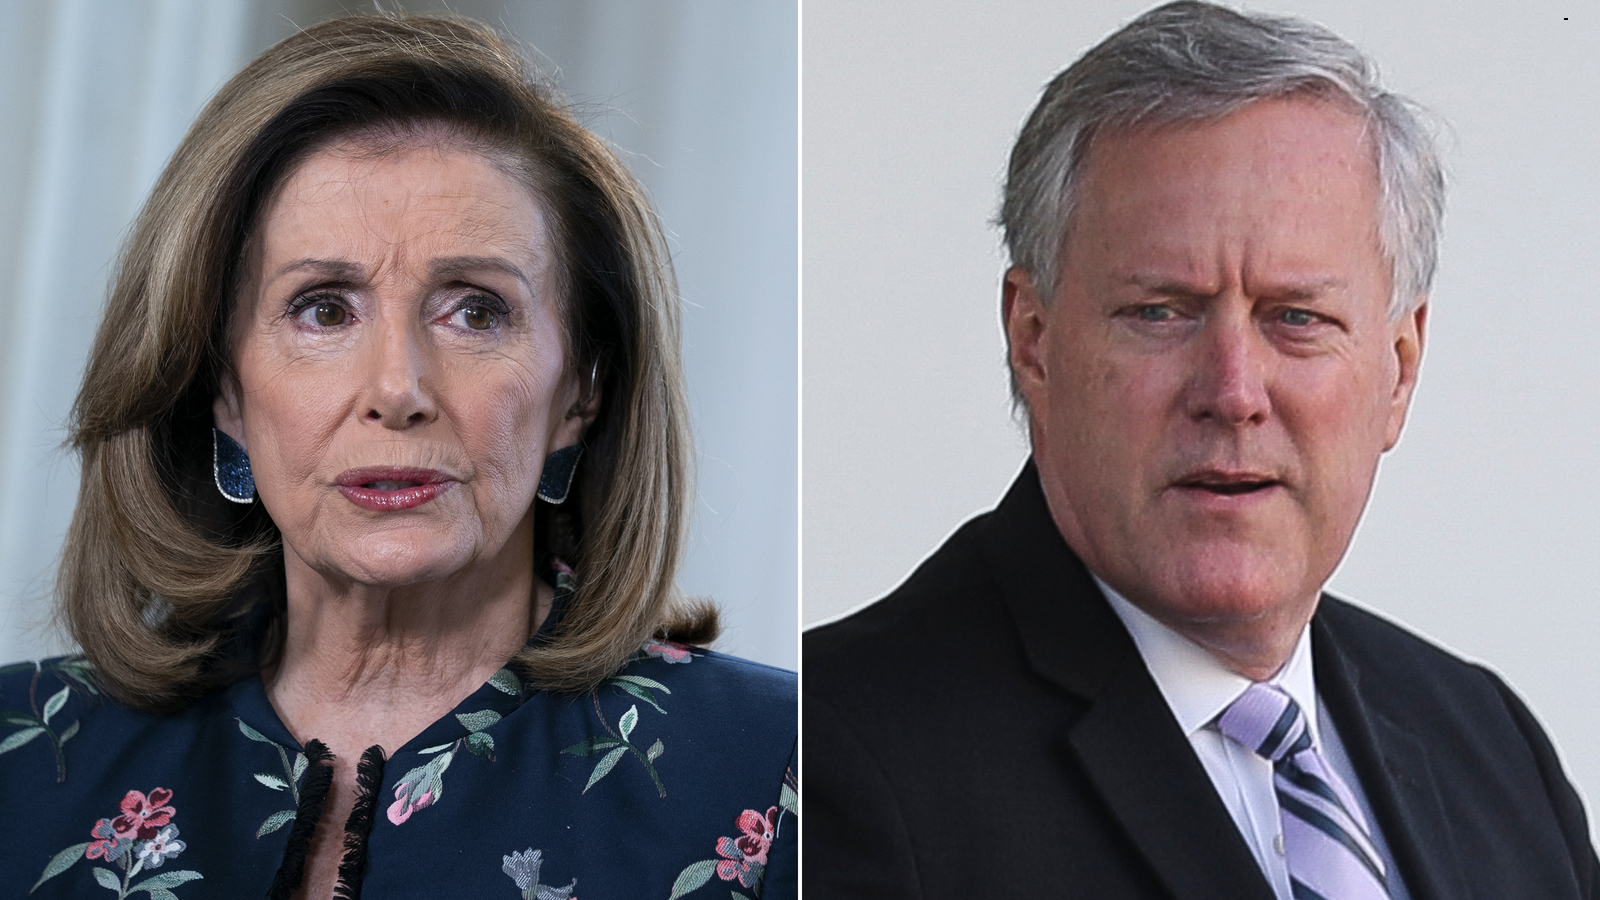 Pelosi and Meadows trade accusations over stimulus talks in sign deal remains elusive